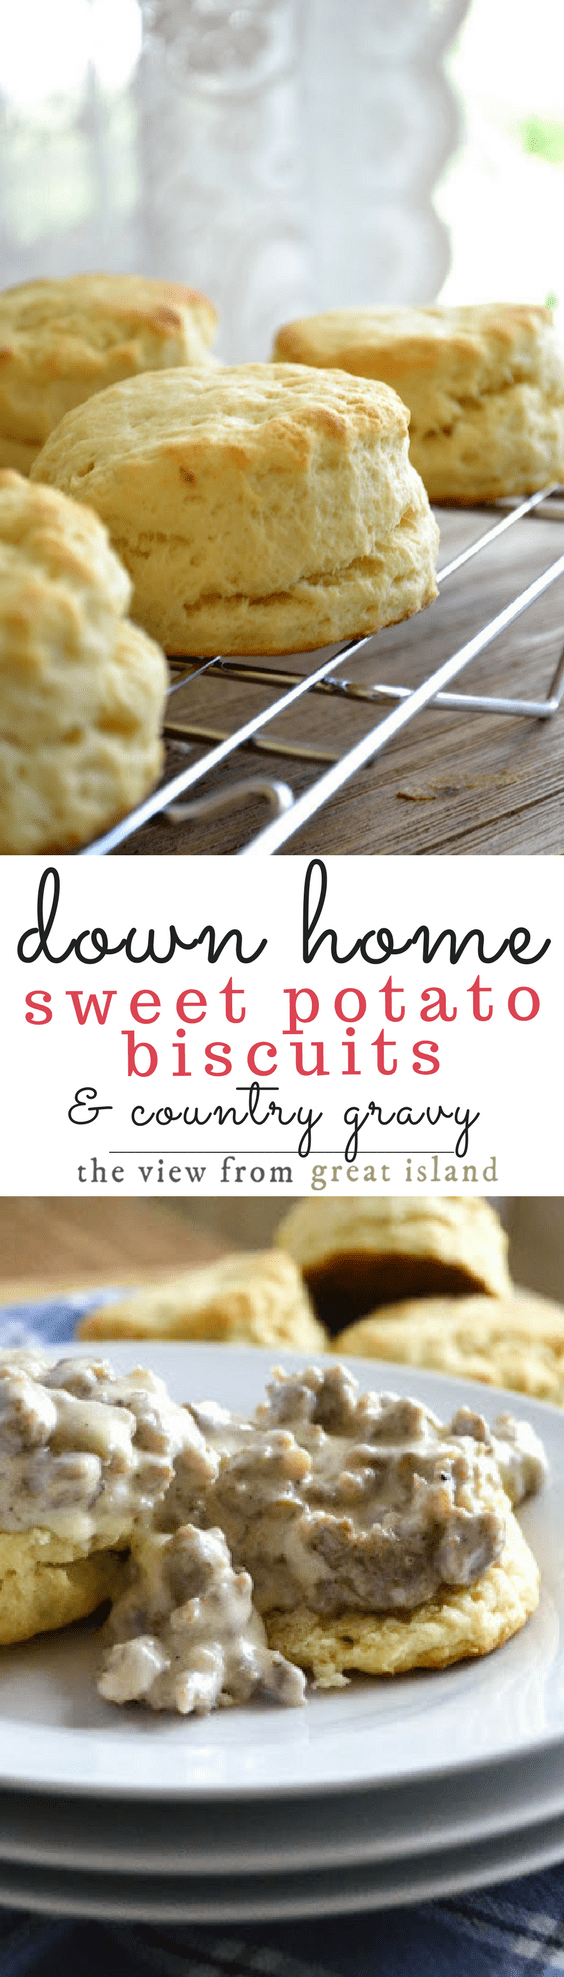 Down Home Sweet Potato Biscuits with Country Gravy ~ these tender biscuits are made impossibly light and fluffy with sweet potato, and they make the perfect base for a classic Southern country gravy! #biscuits #bestbiscuits #breakfast #countrygravy #bread #fall